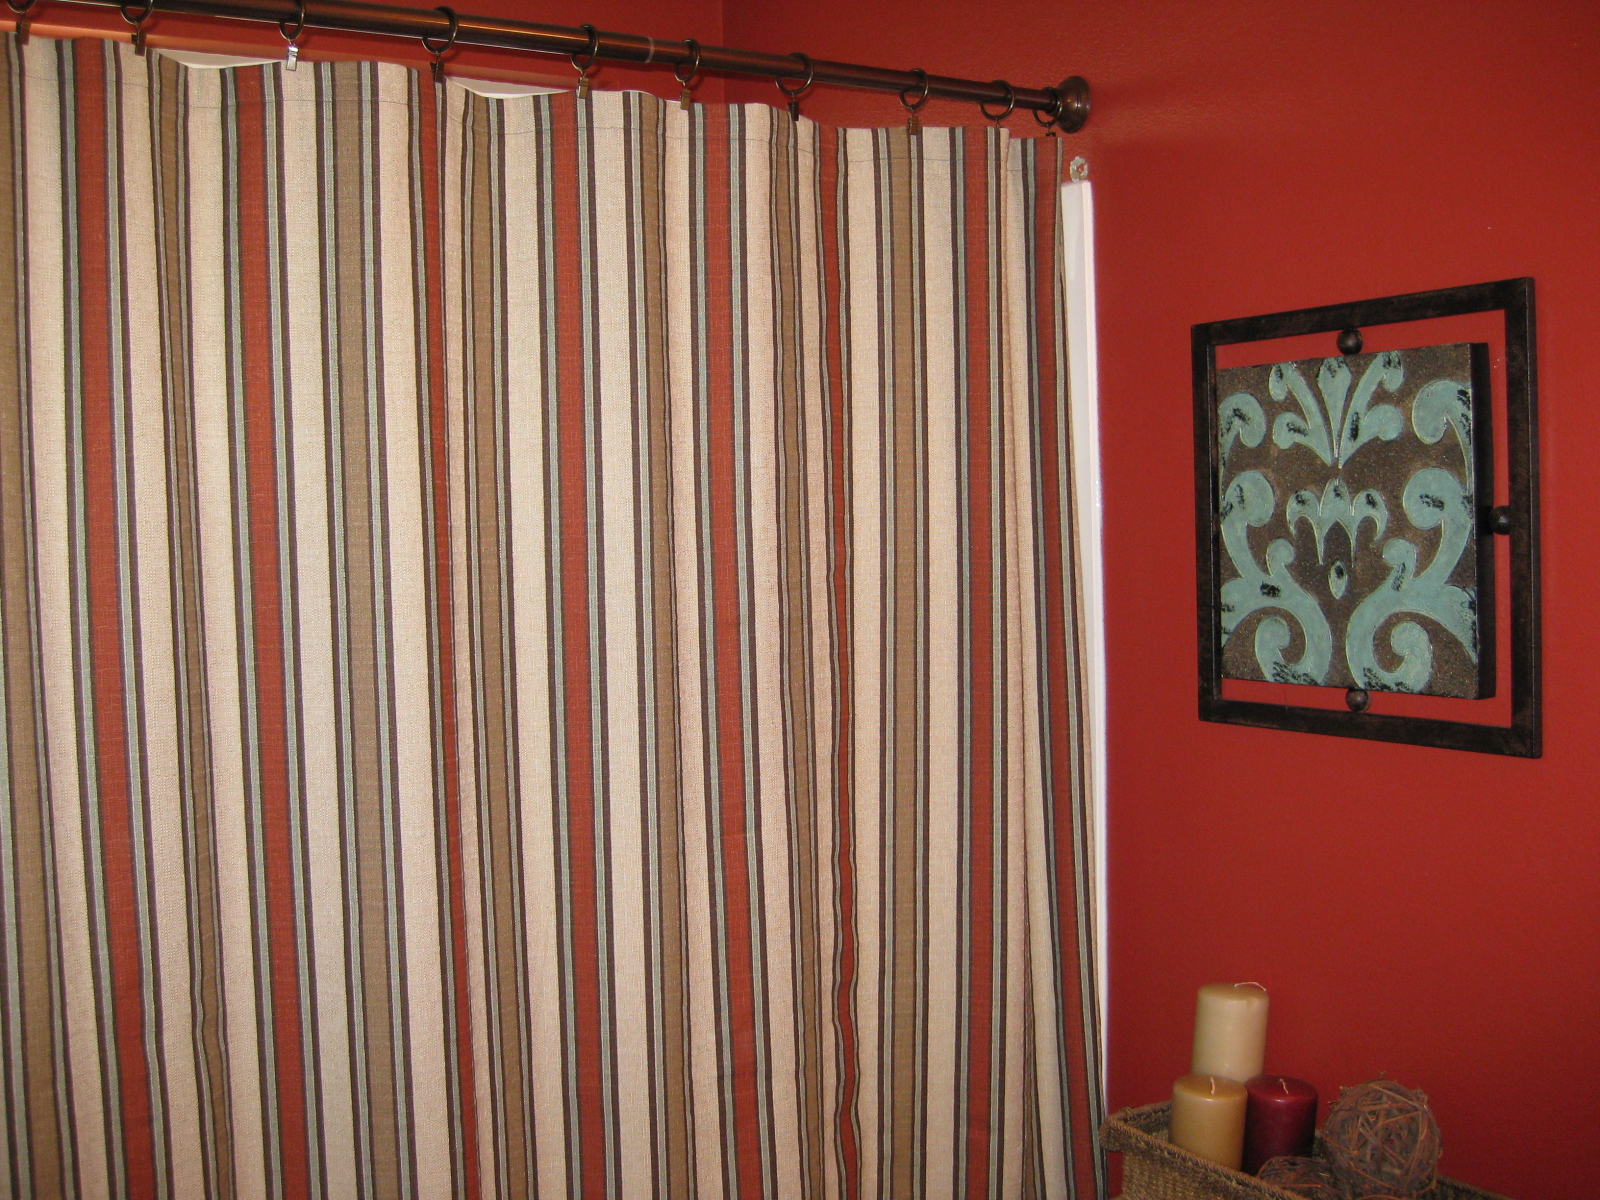 TDA decorating and design: My Own Handmade Shower Curtains